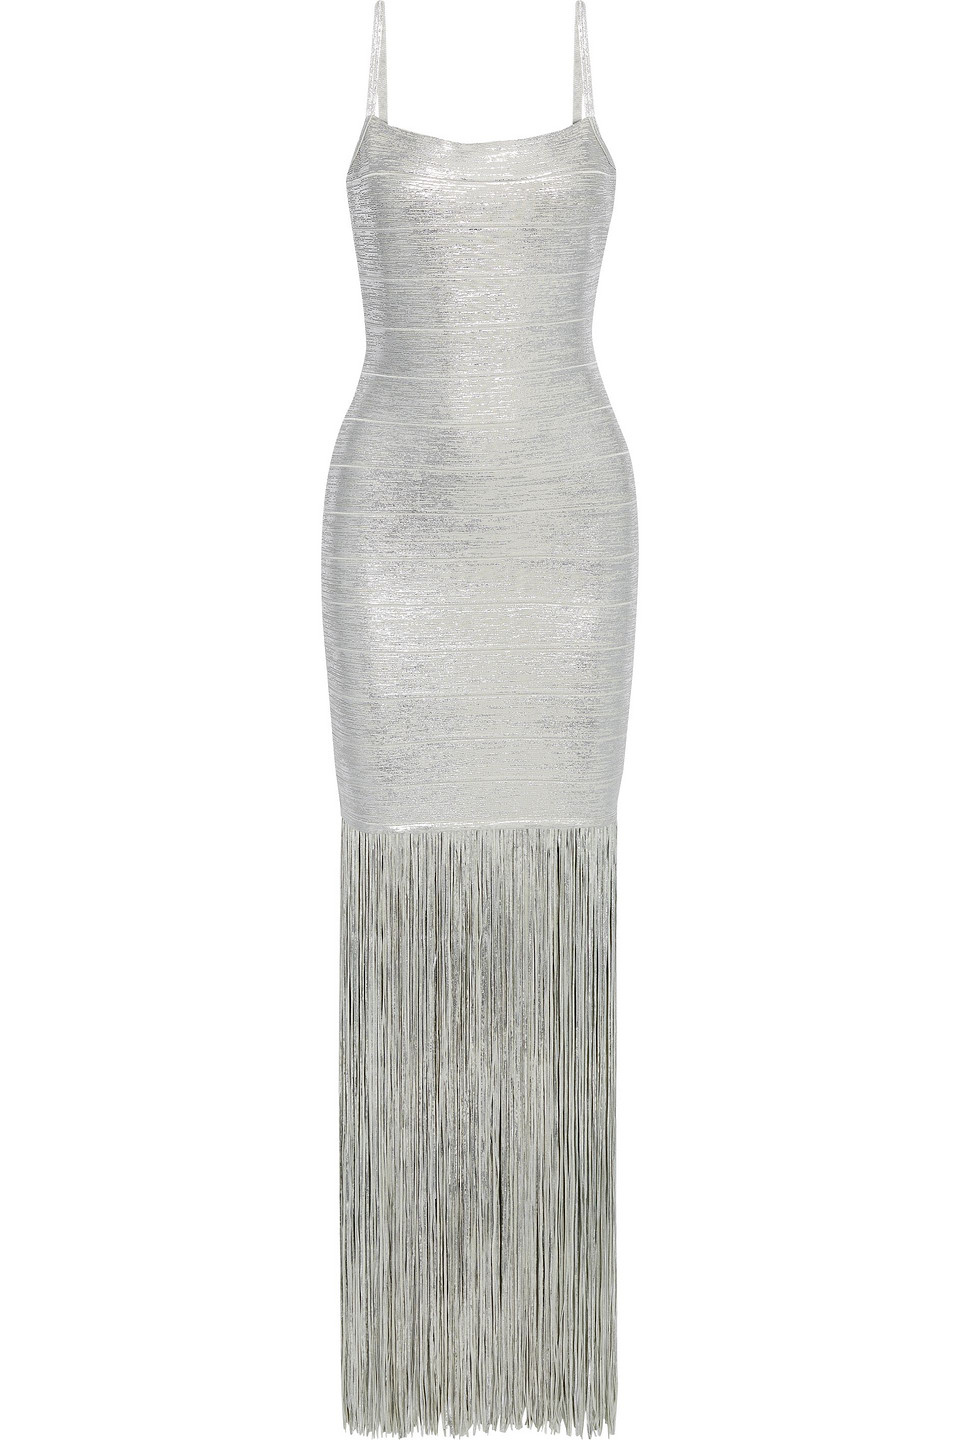 Hervé Léger   Herve Leger Woman Fringed Coated Metallic Bandage Gown Silver   Clouty